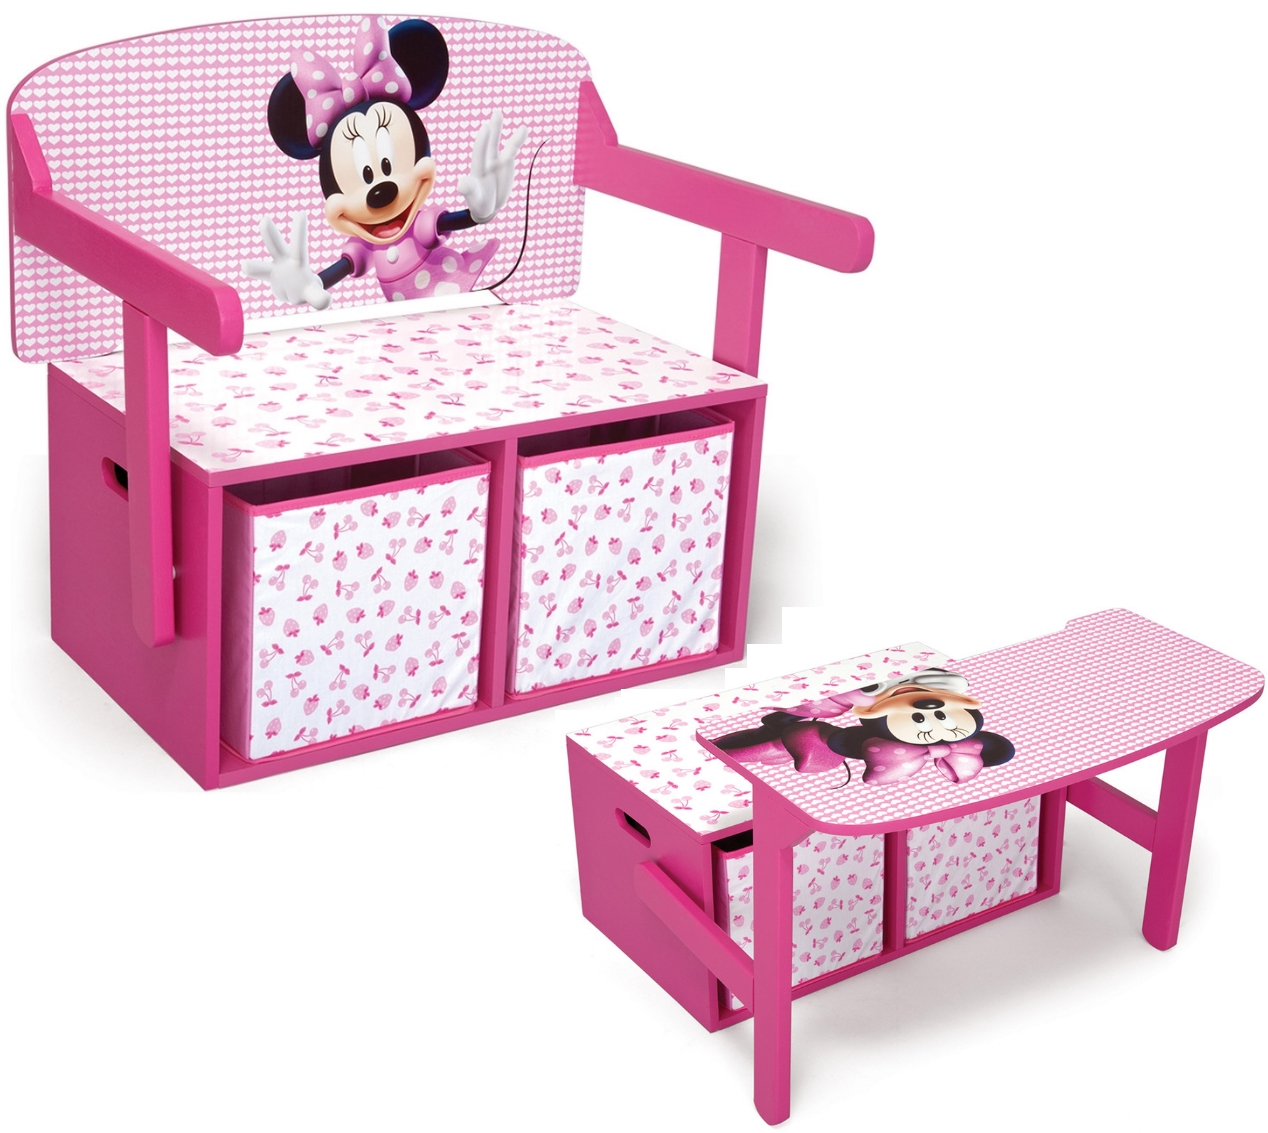 kindersitzbank disney truhe spielzeugtruhe spielzeugkiste. Black Bedroom Furniture Sets. Home Design Ideas